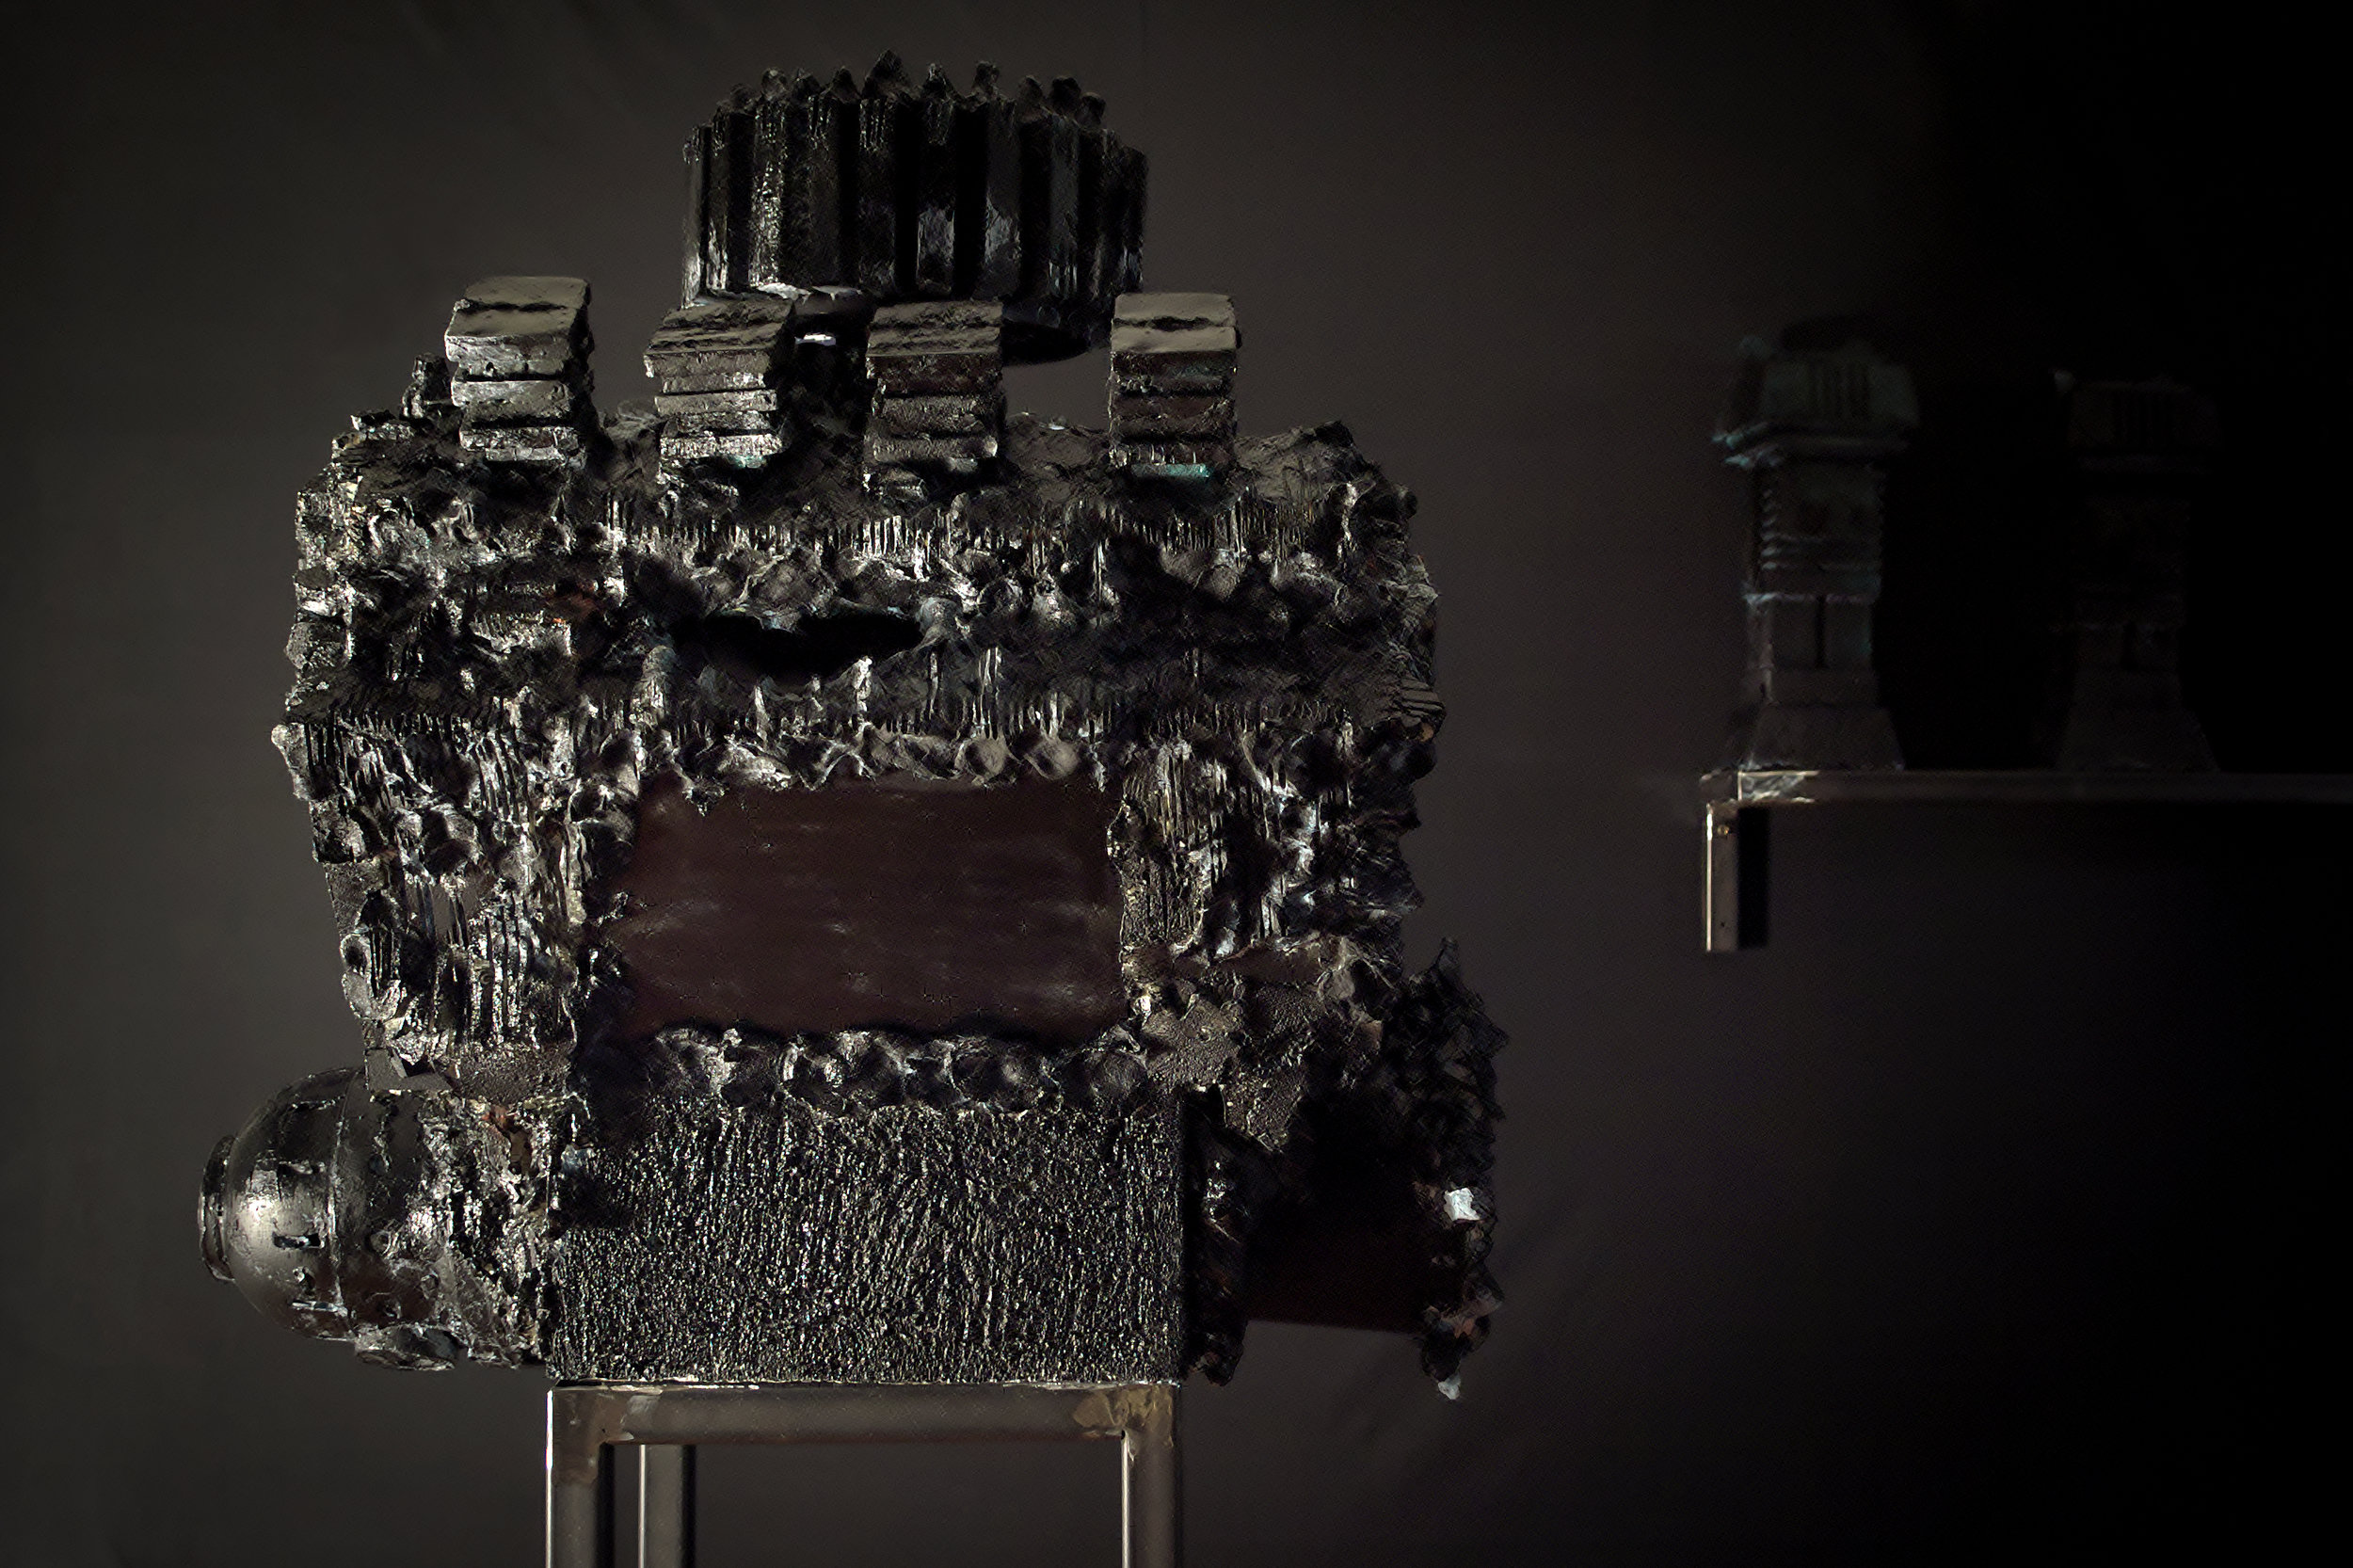 A V8 Engine inspired sculpture at By Other Means, London